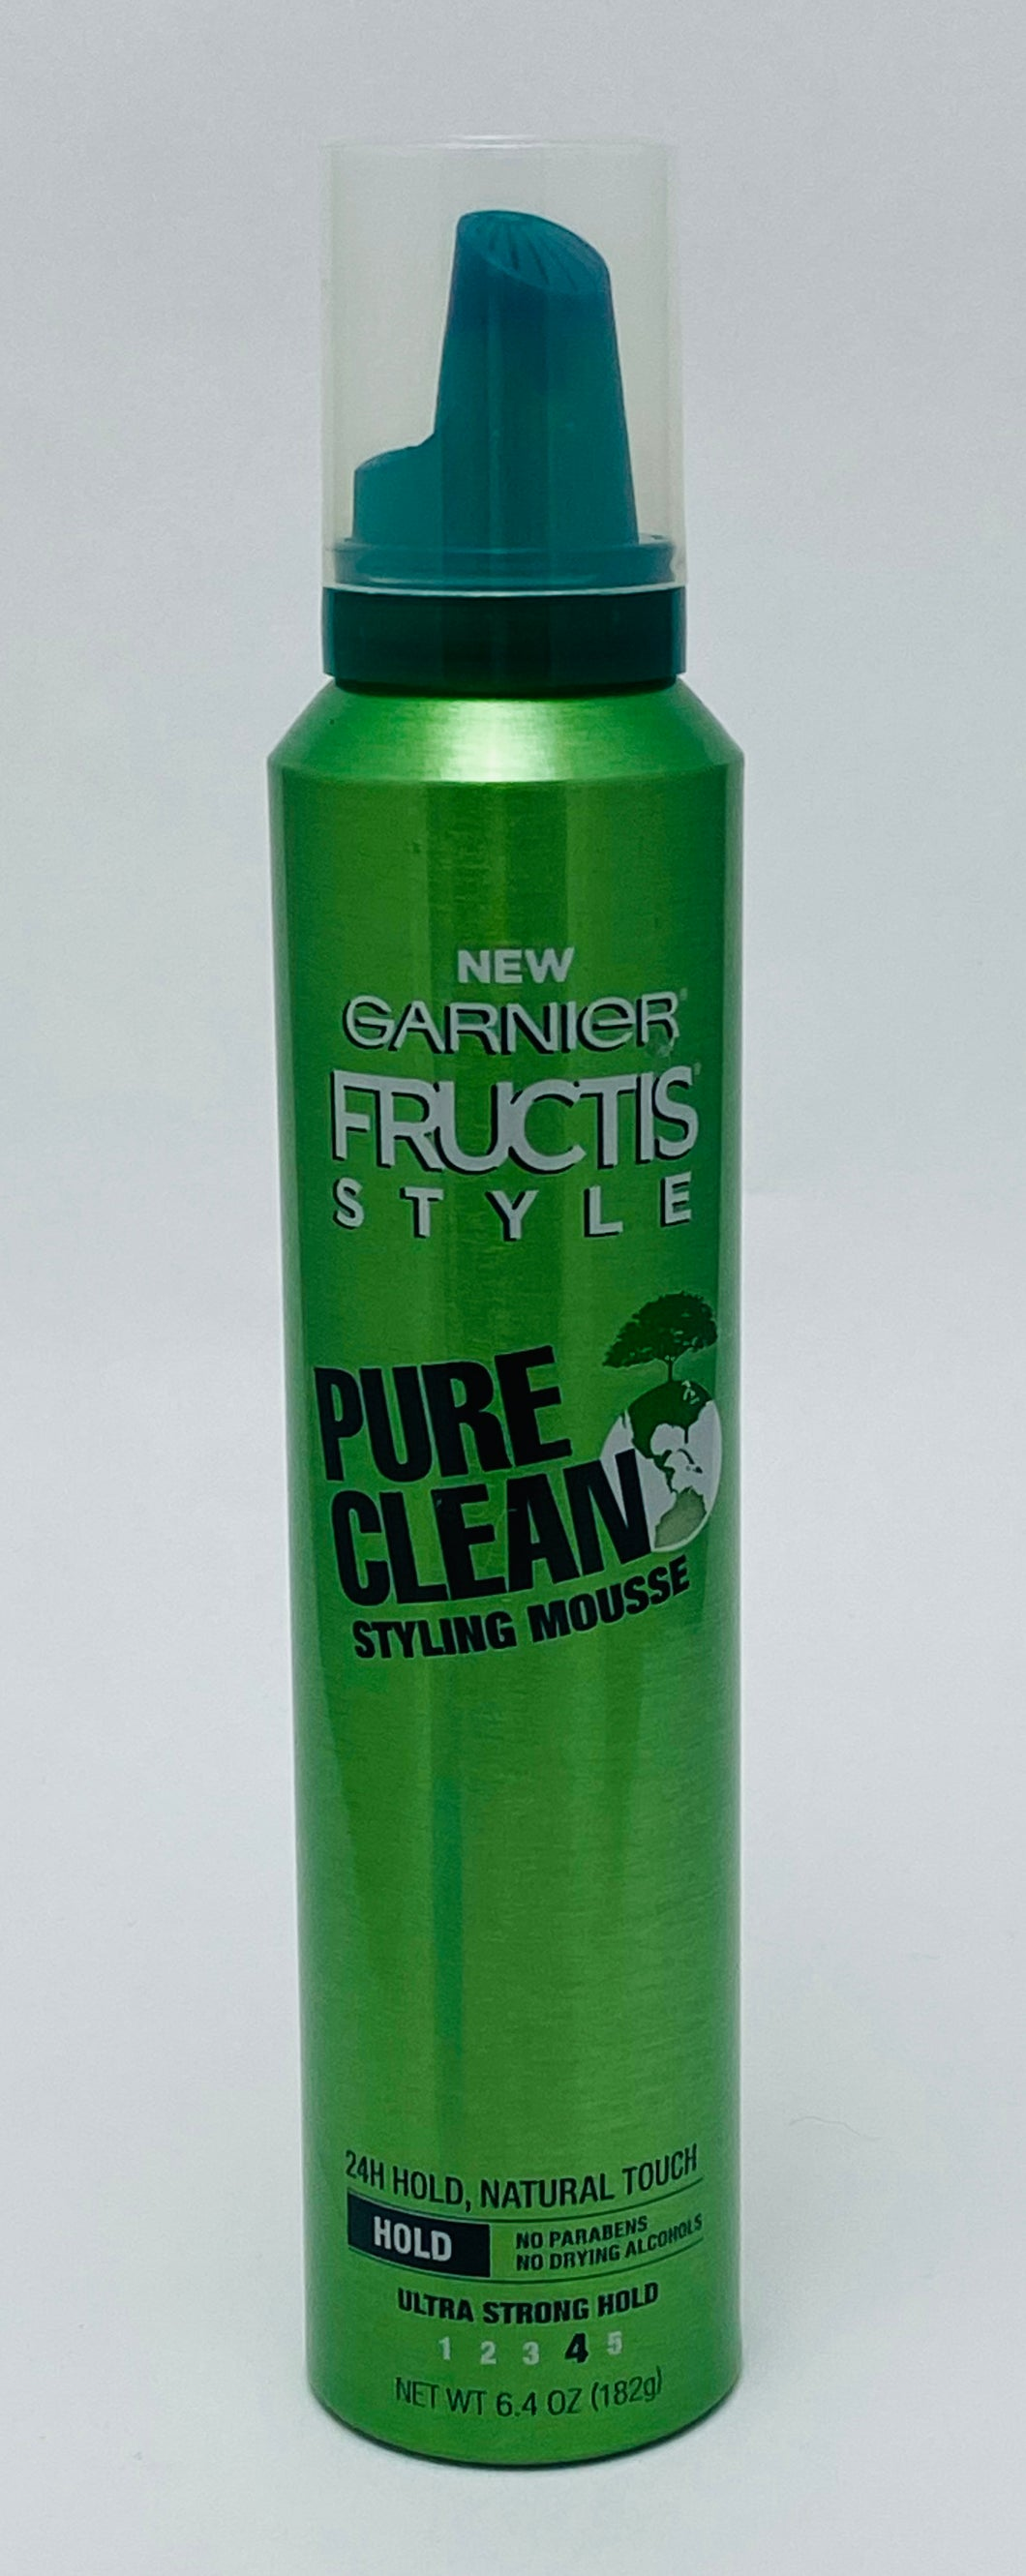 Garnier Fructis Style  - Pure Clean Styling Mousse - 24H Ultra strong Hold, - 6.4 OZ (182g)